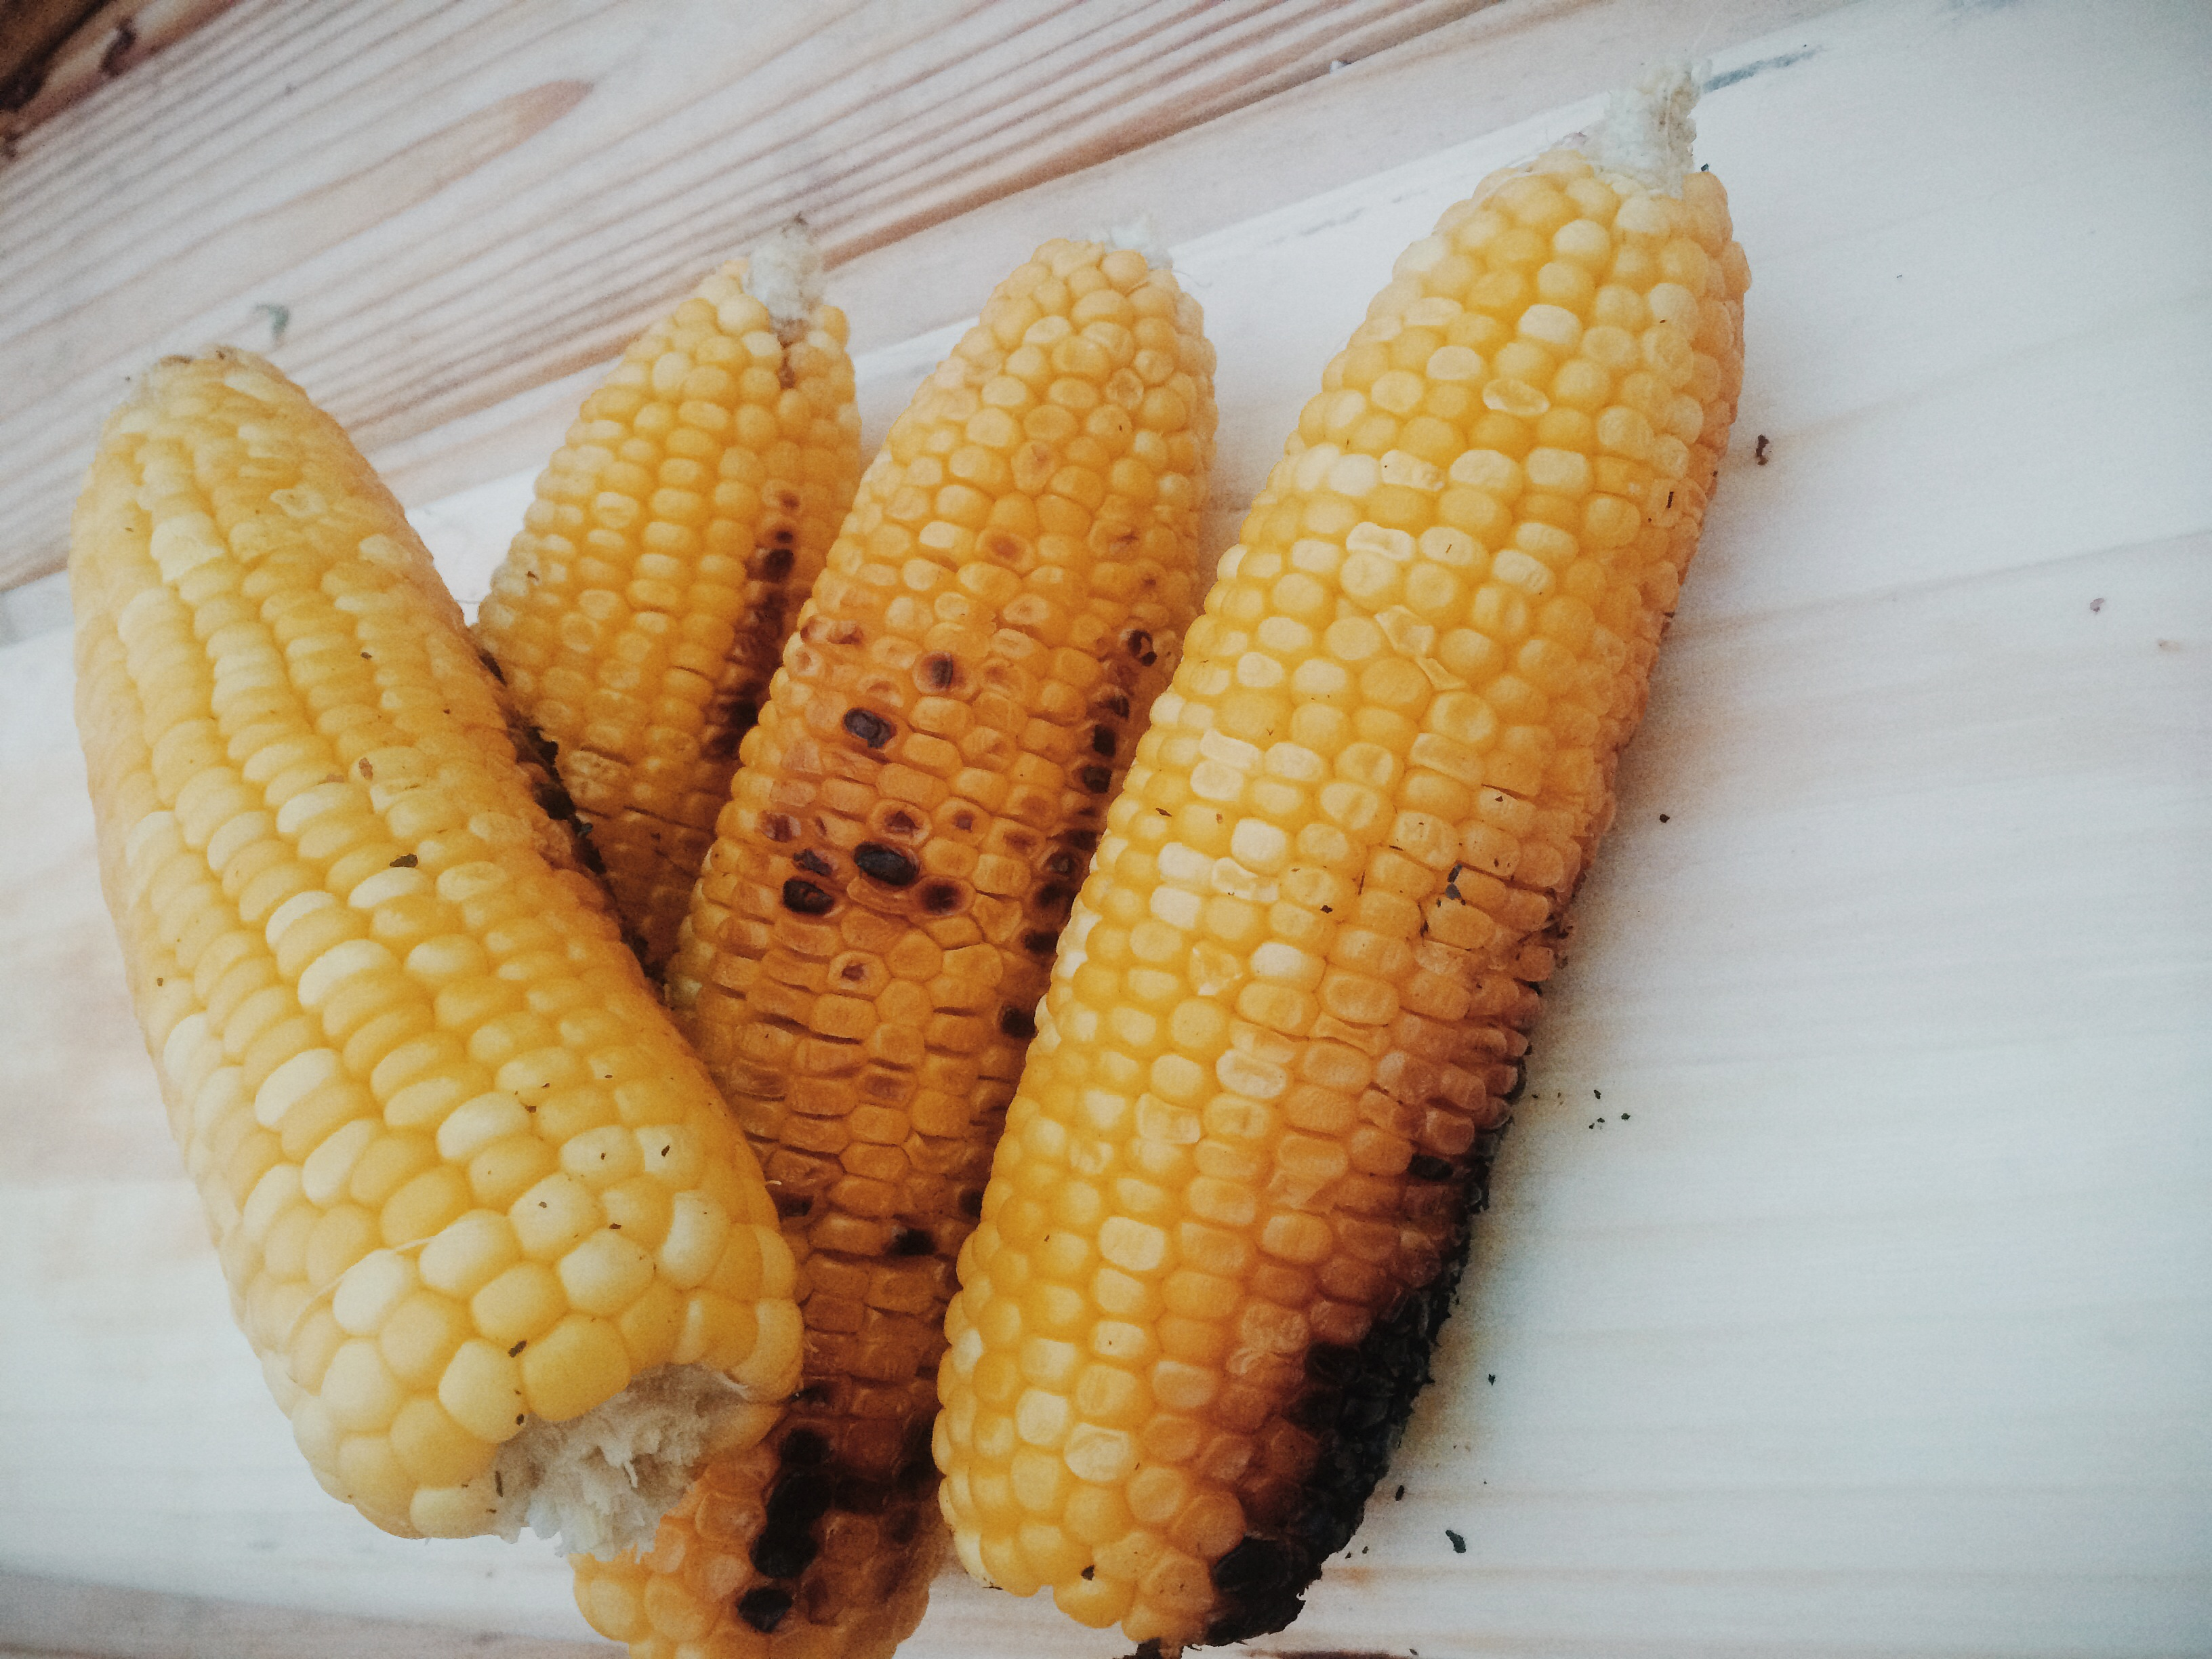 Grilled corn.